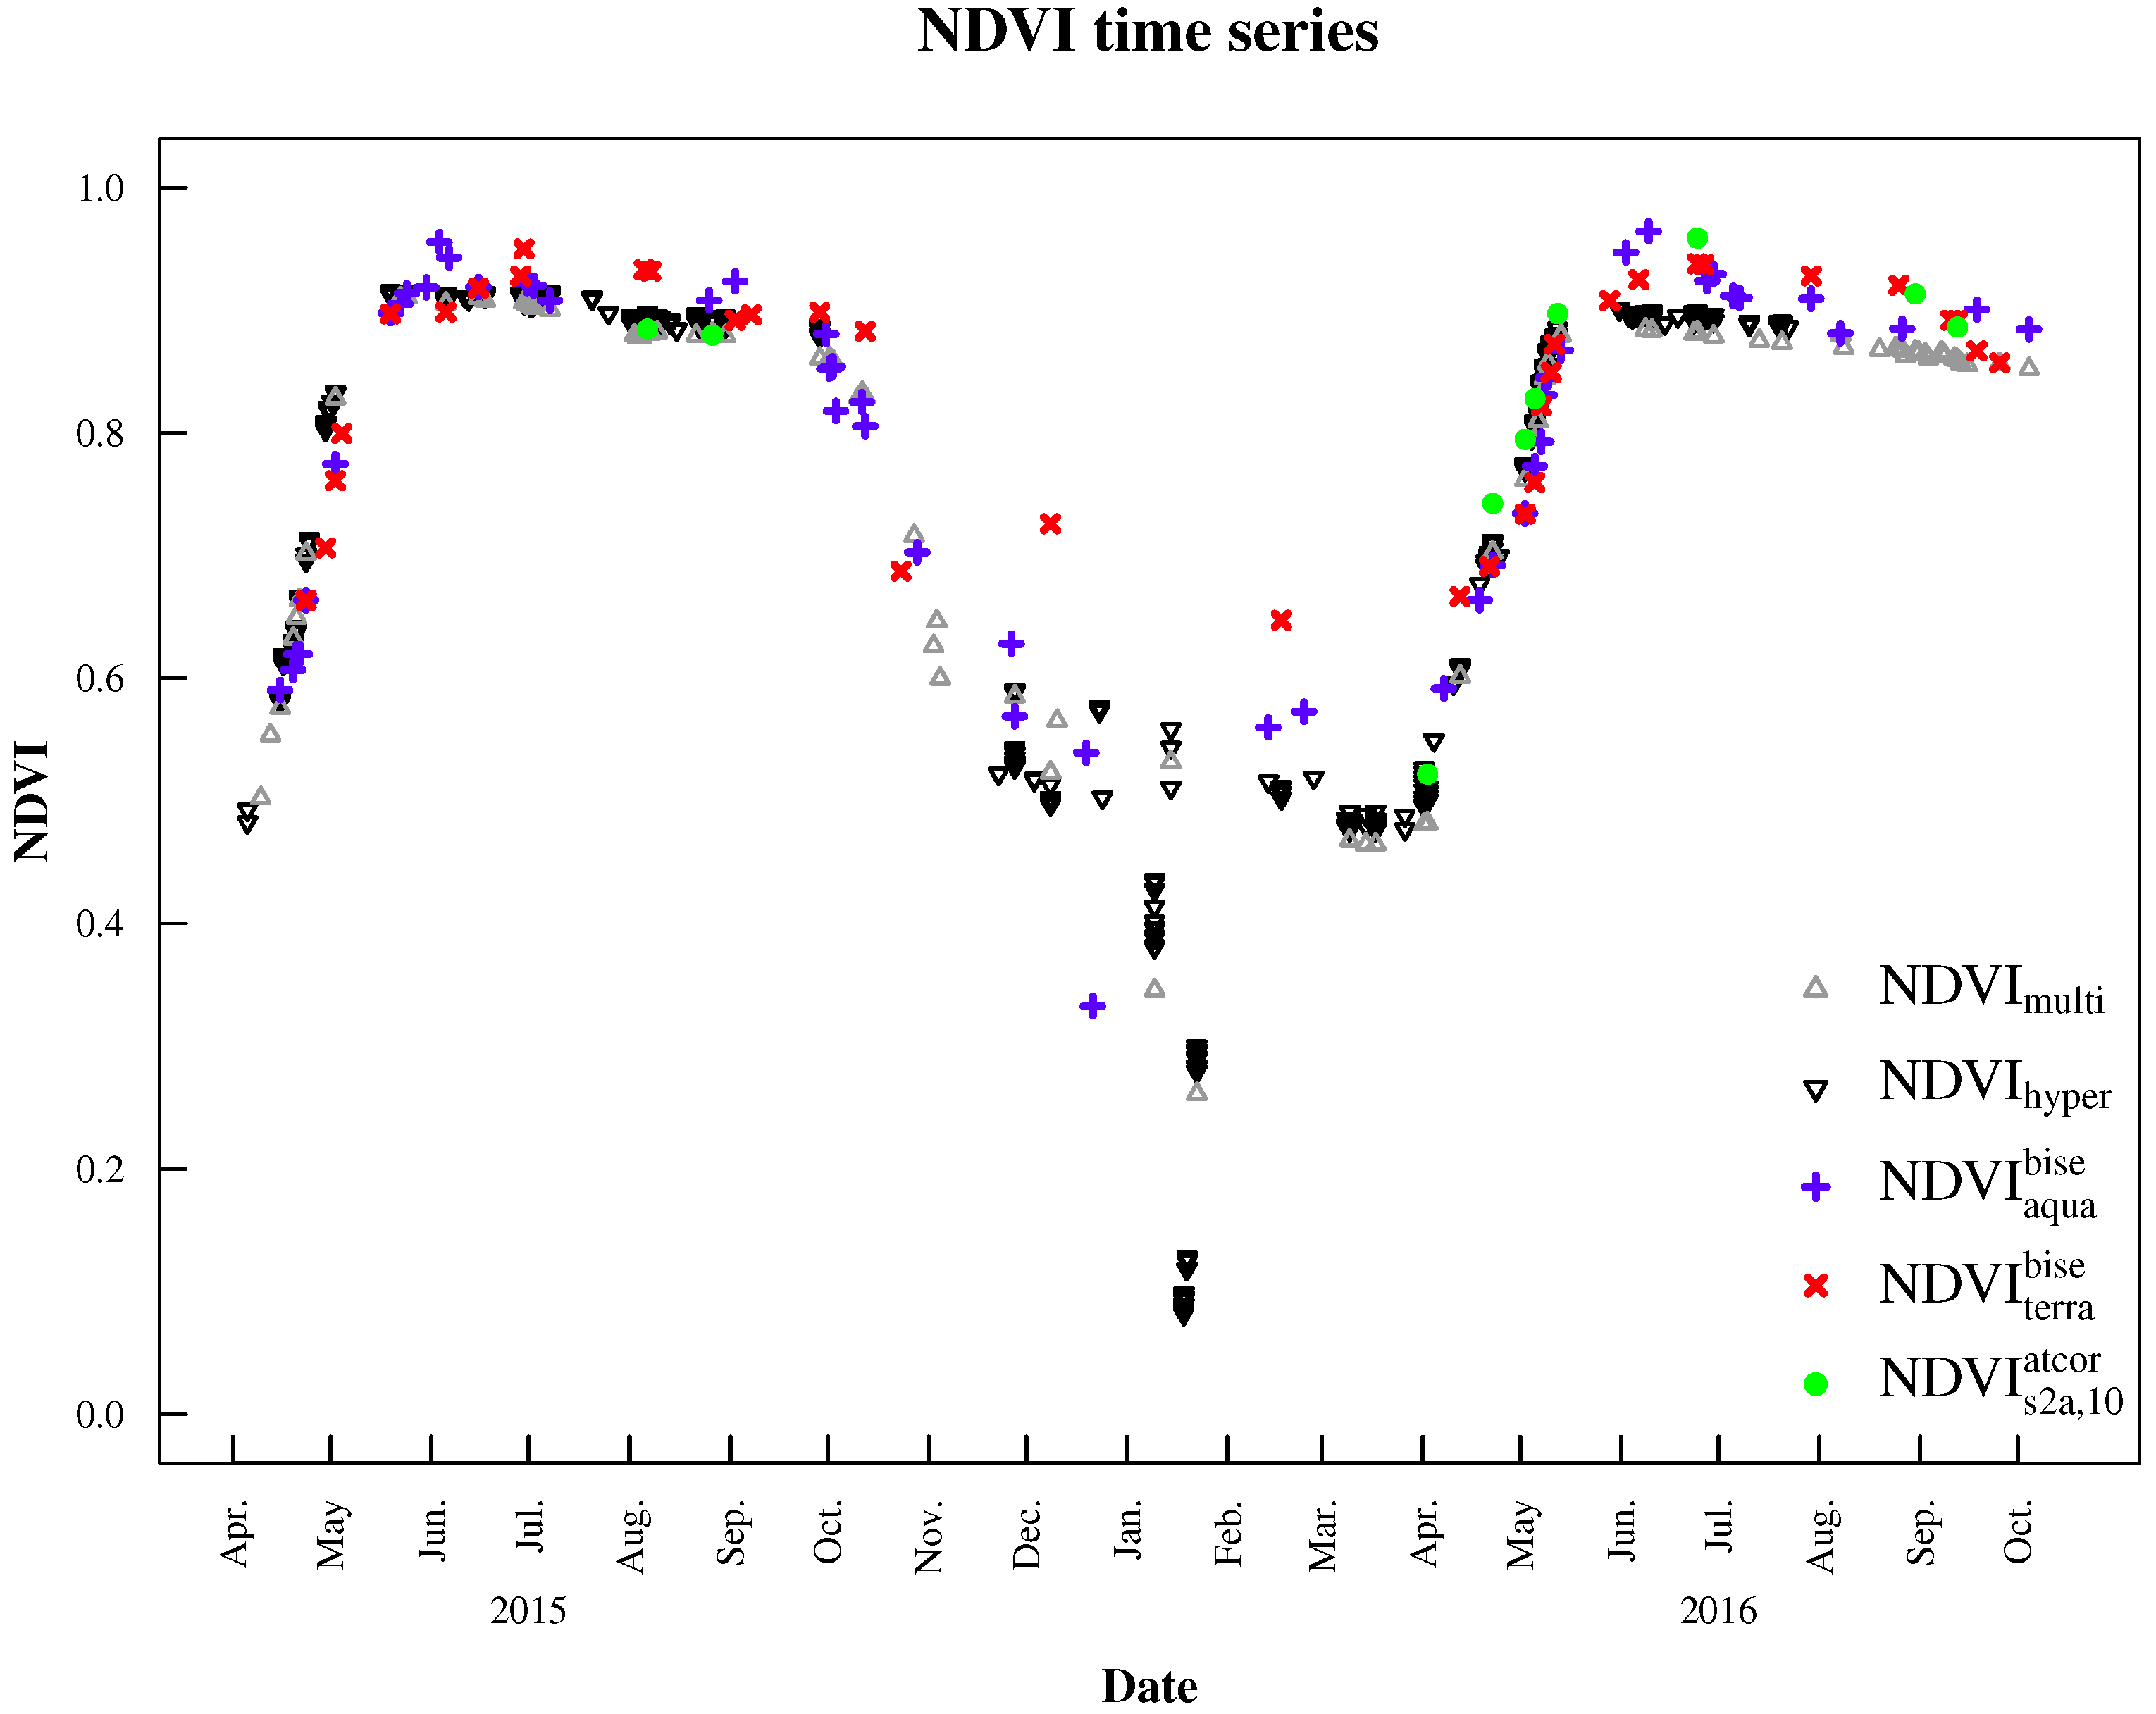 NDVI time series derived from the hyperspectral sensor system, multispectral sensor system, MODIS Aqua and Terra, as well as Sentinel-2A processed with ATCOR 2/3.